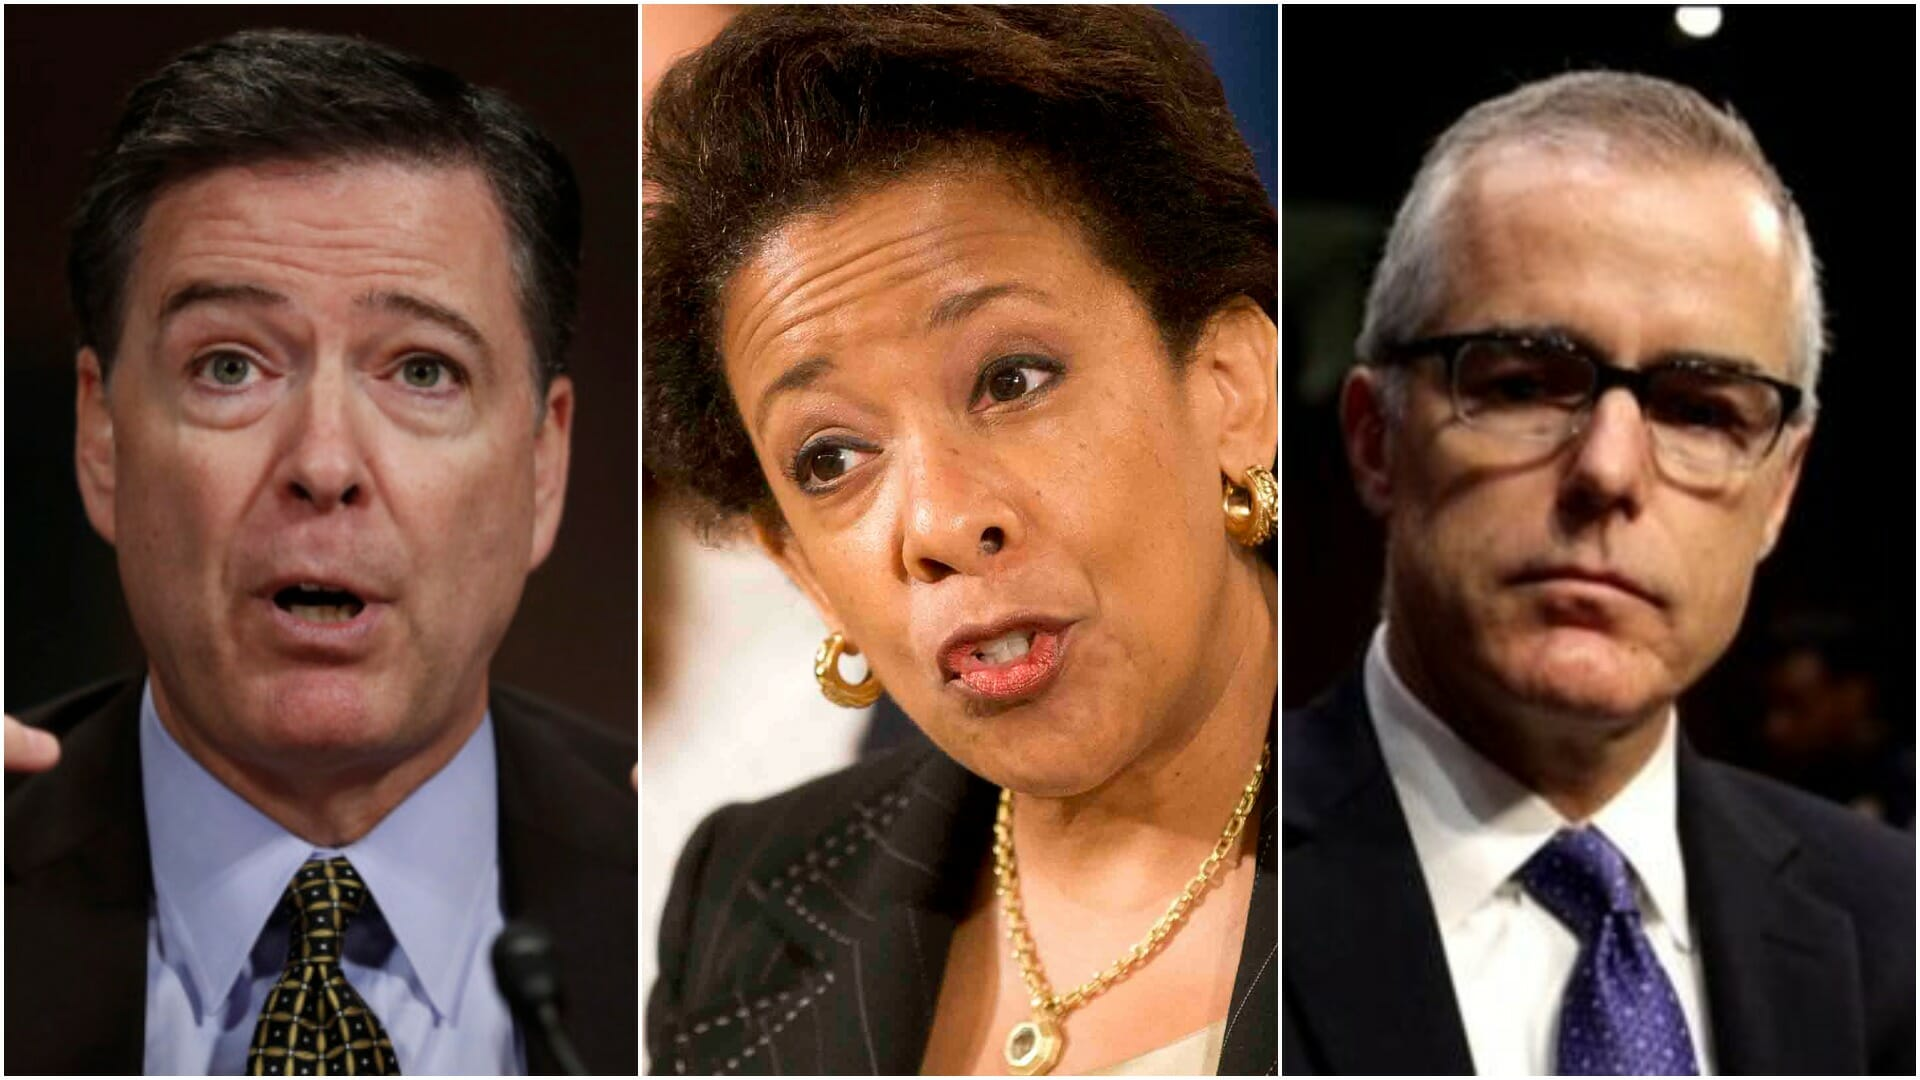 LEAK: Loretta Lynch, James Comey & Andrew McCabe in HOT SEAT as IG Investigation Nears End